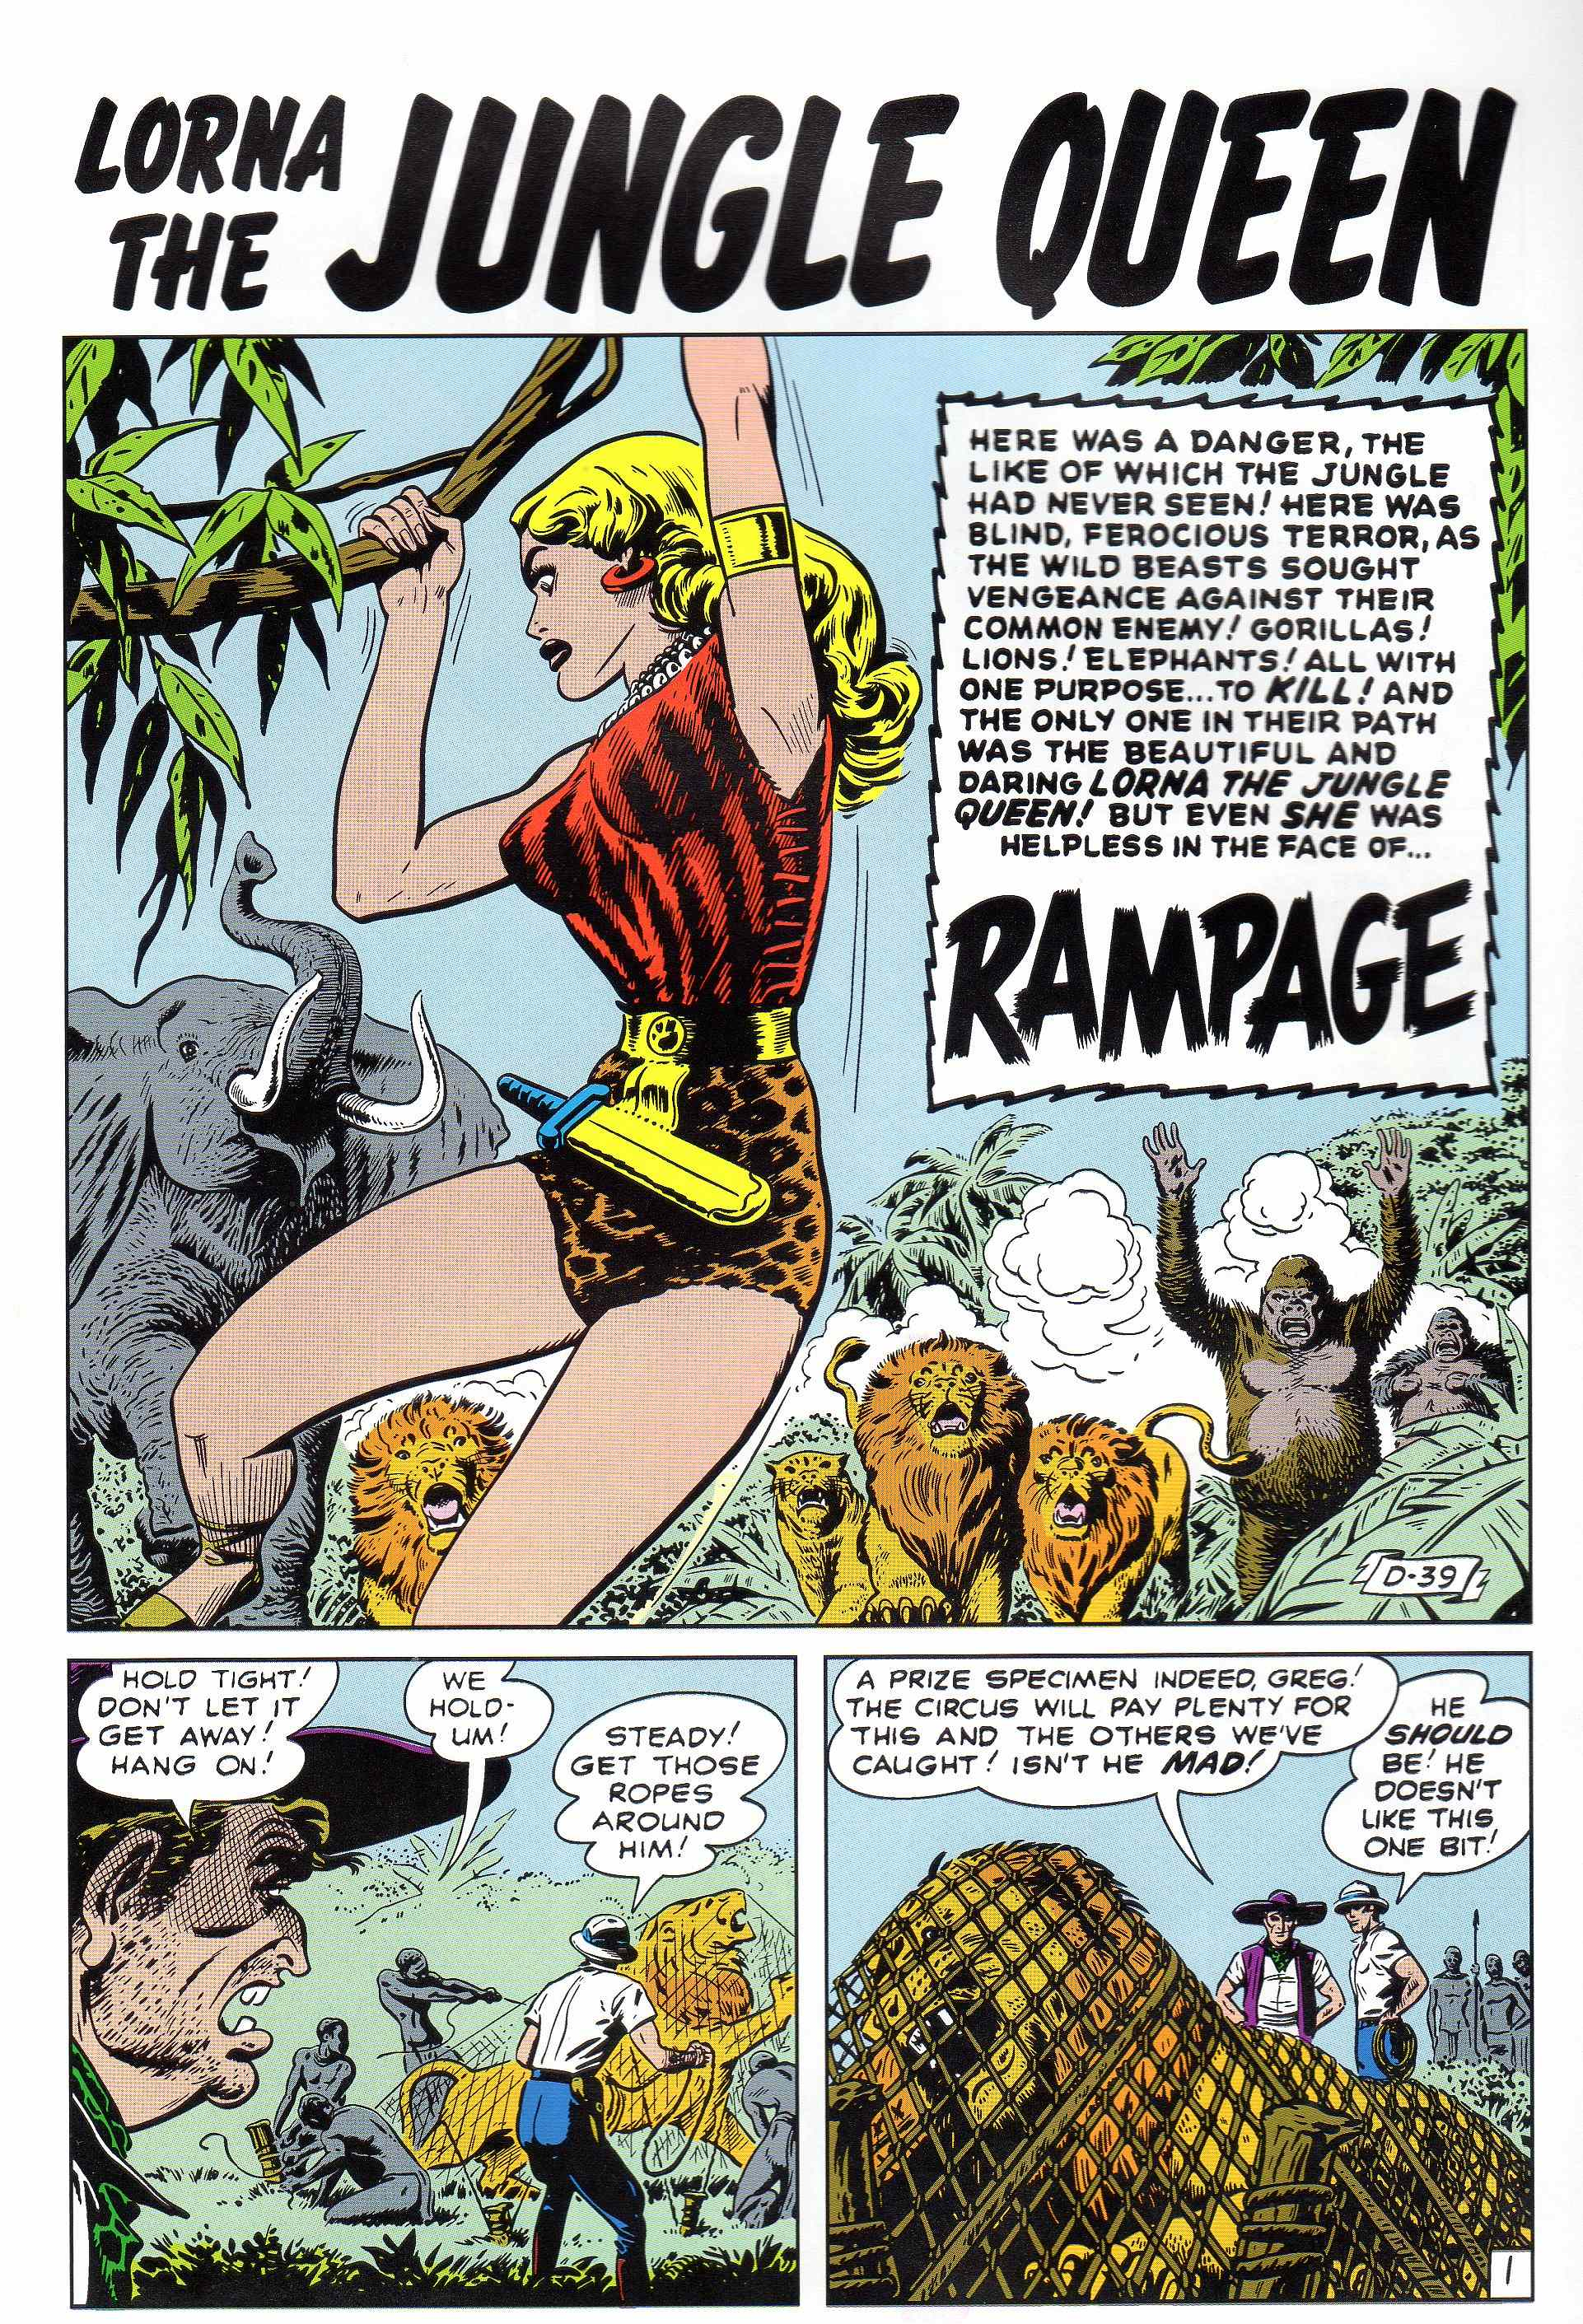 Read online Lorna, The Jungle Queen comic -  Issue #4 - 2